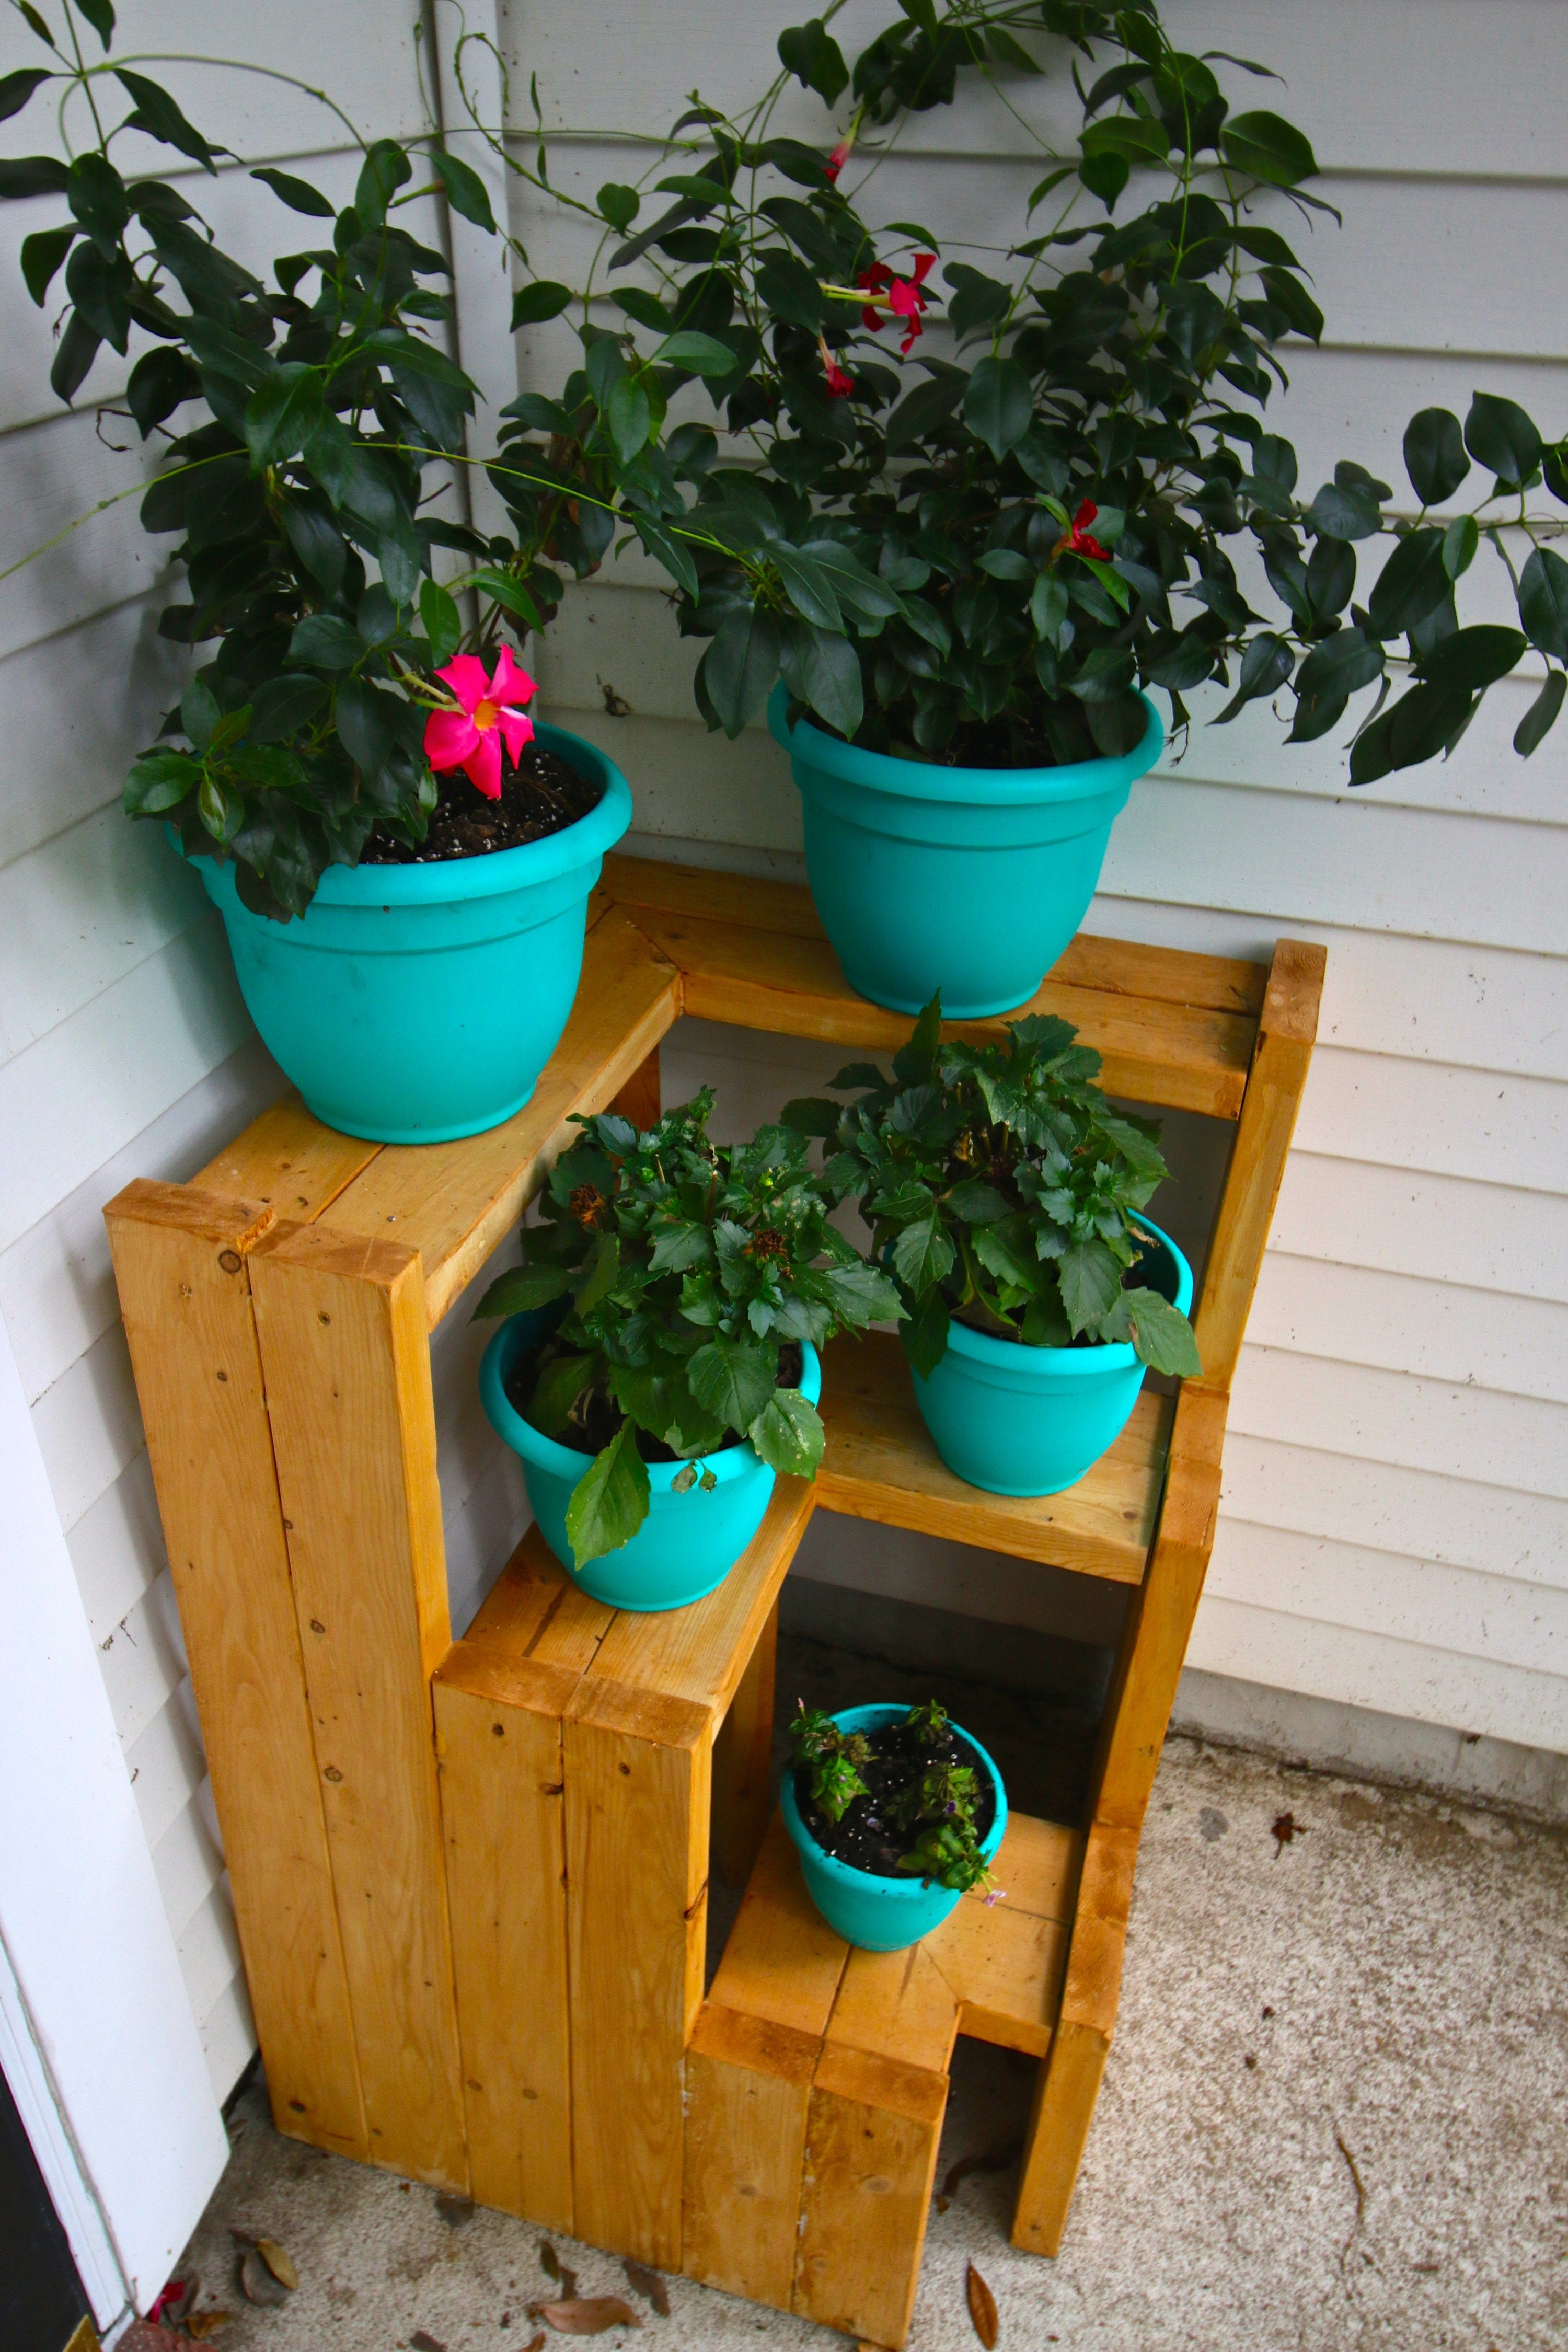 Diy 3 Tiered Planter Corner Plant Stand For Front Porch Built From 2x4s Charleston Crafted